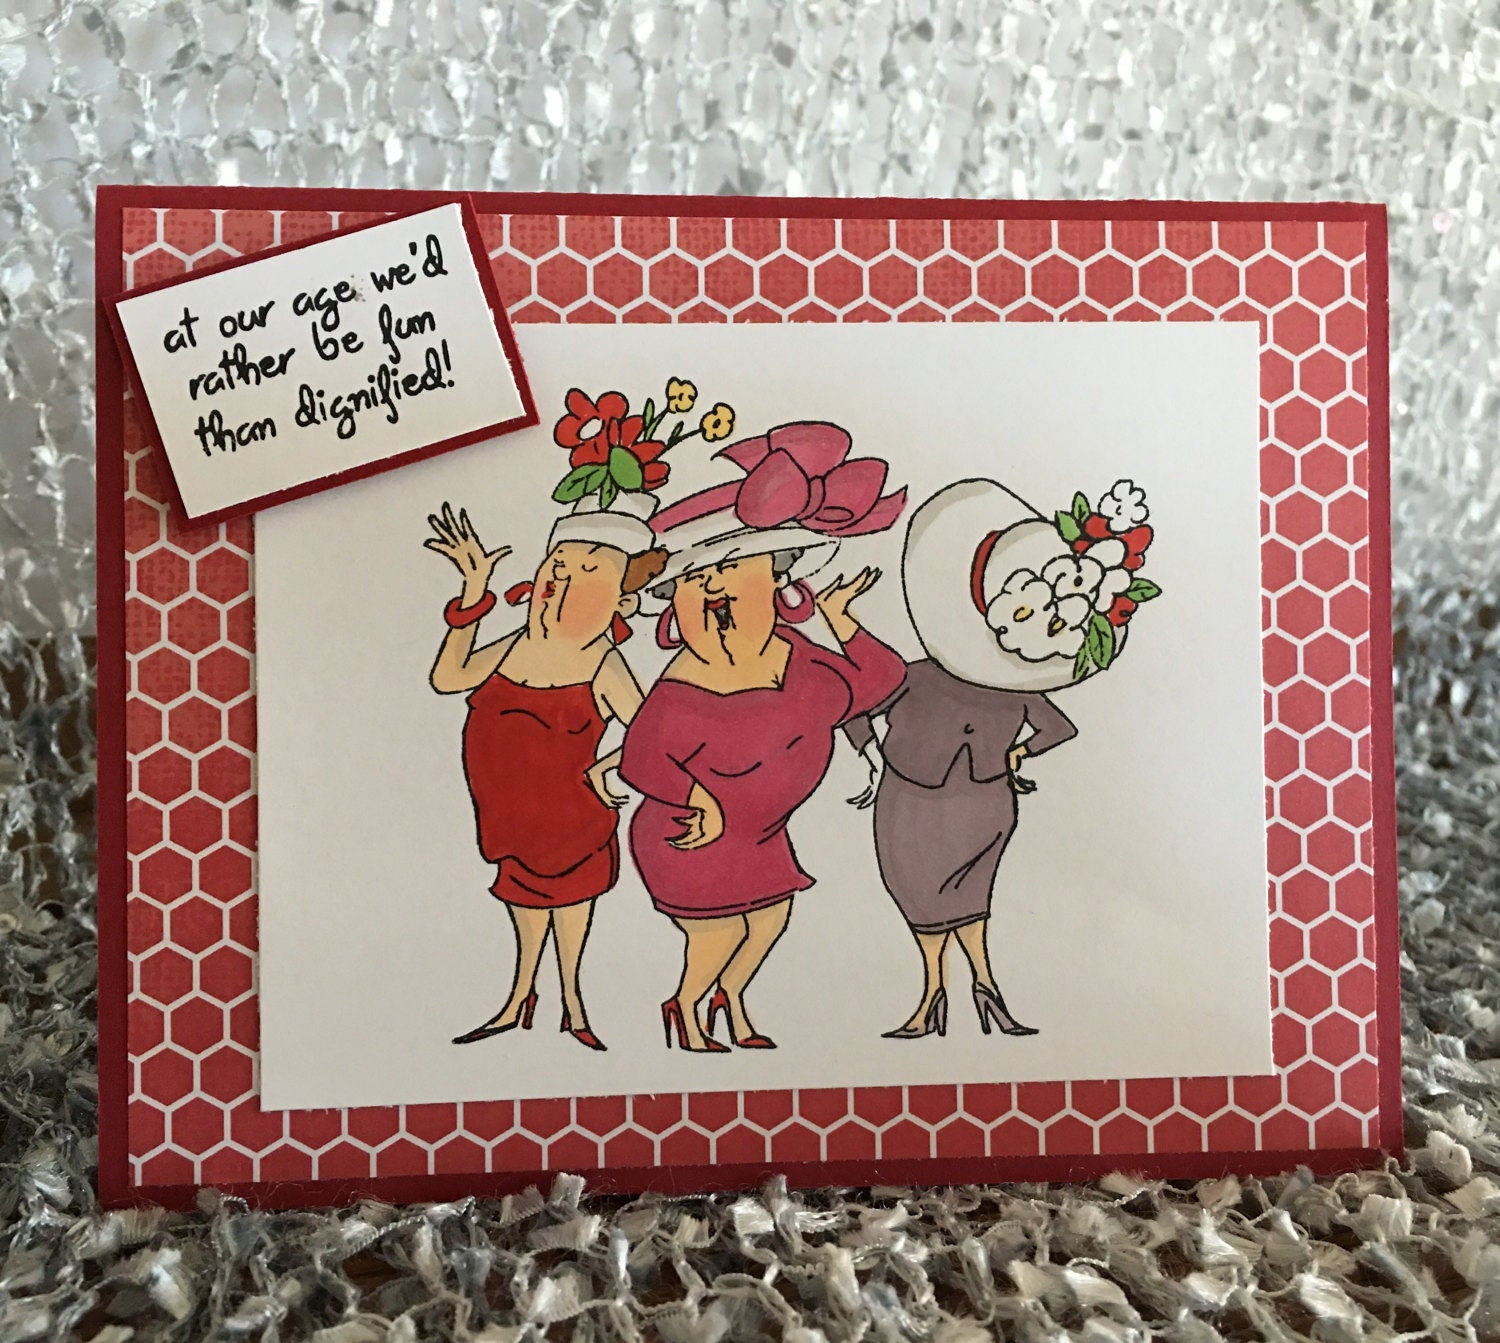 Cute Card Ideas For Birthday Hat Ladies Birthday Funny Handmade Cards Birthday Card Fun Card Ladies In Red Happy Birthday Friend Card Fun Girls Birthday Wishes